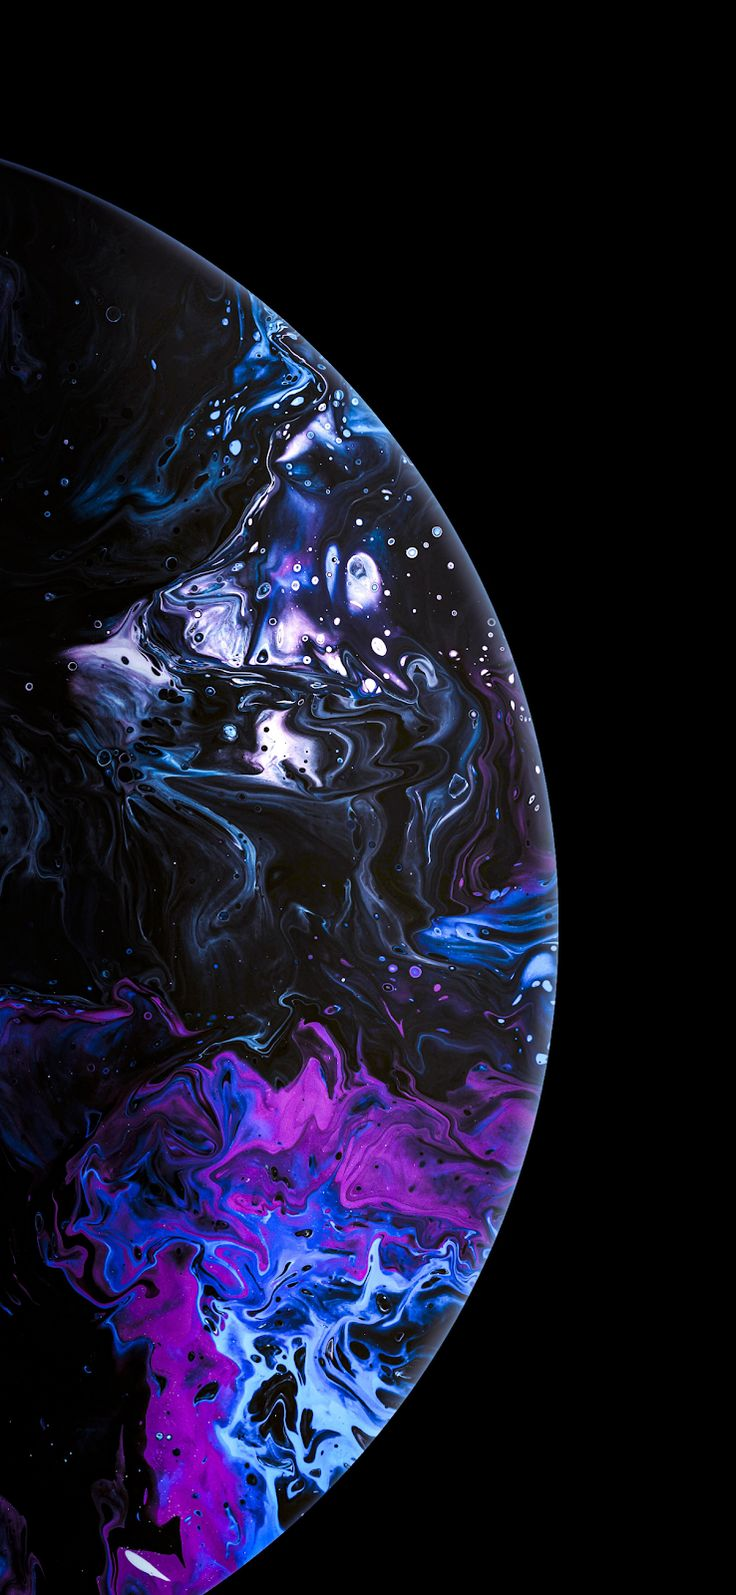 Purplish Bubble wallpaper, Apple wallpaper